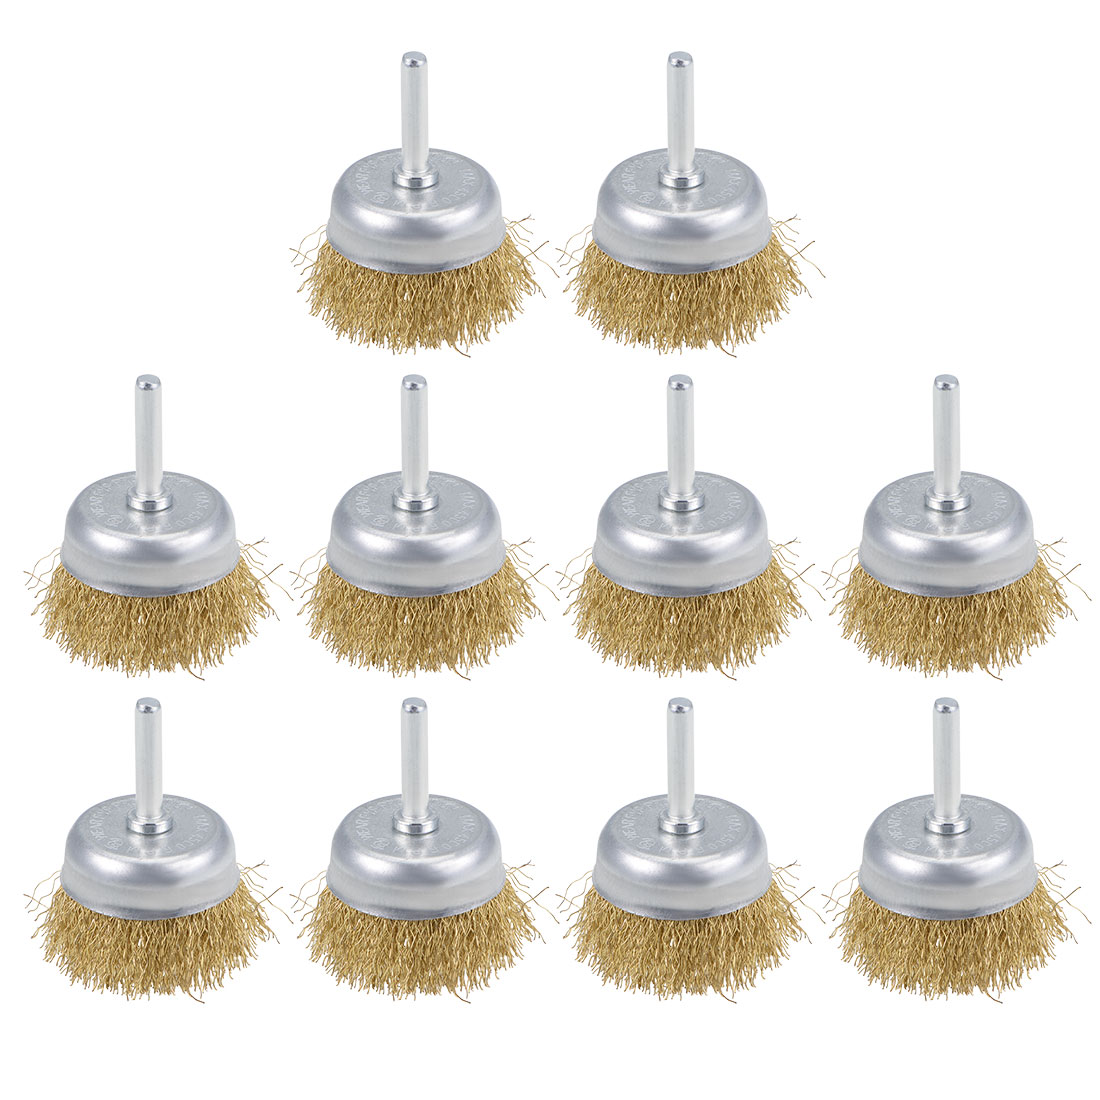 2-Inch Wire Cup Brush Brass Plated Crimped Steel with 1/4-inch Shank 10 Pcs